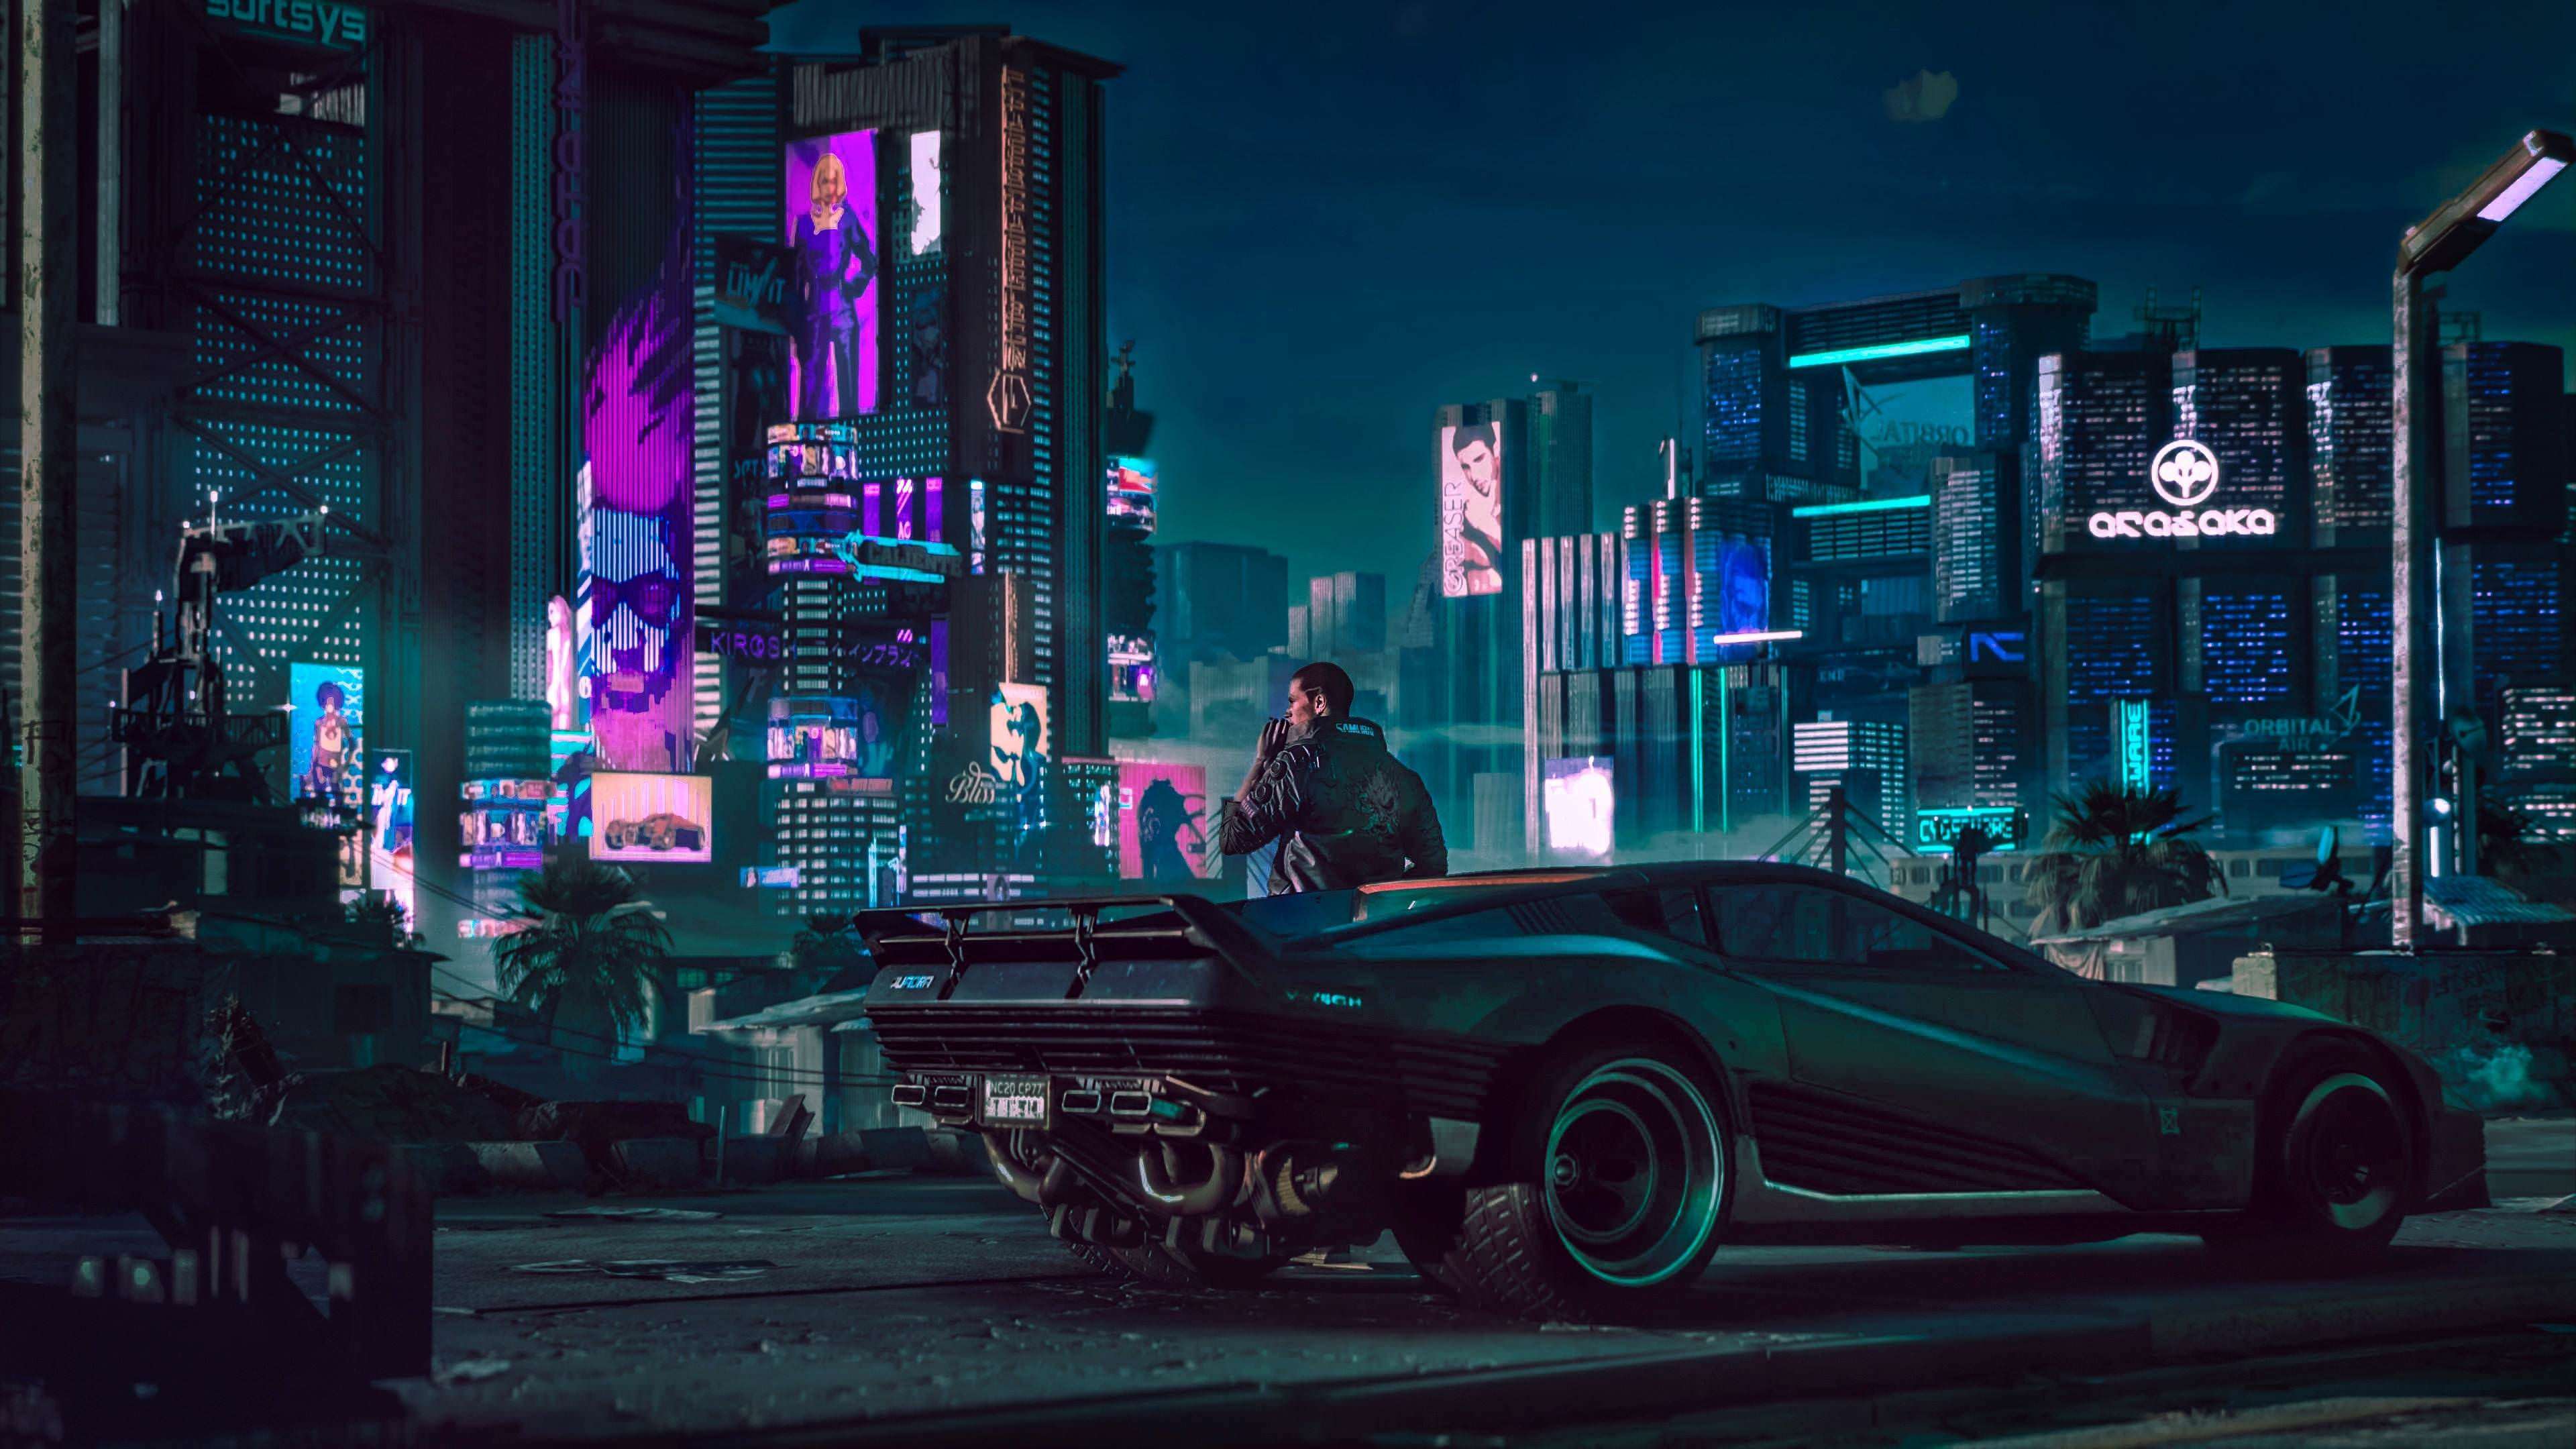 cyberpunk 2077 wallpaper 4k